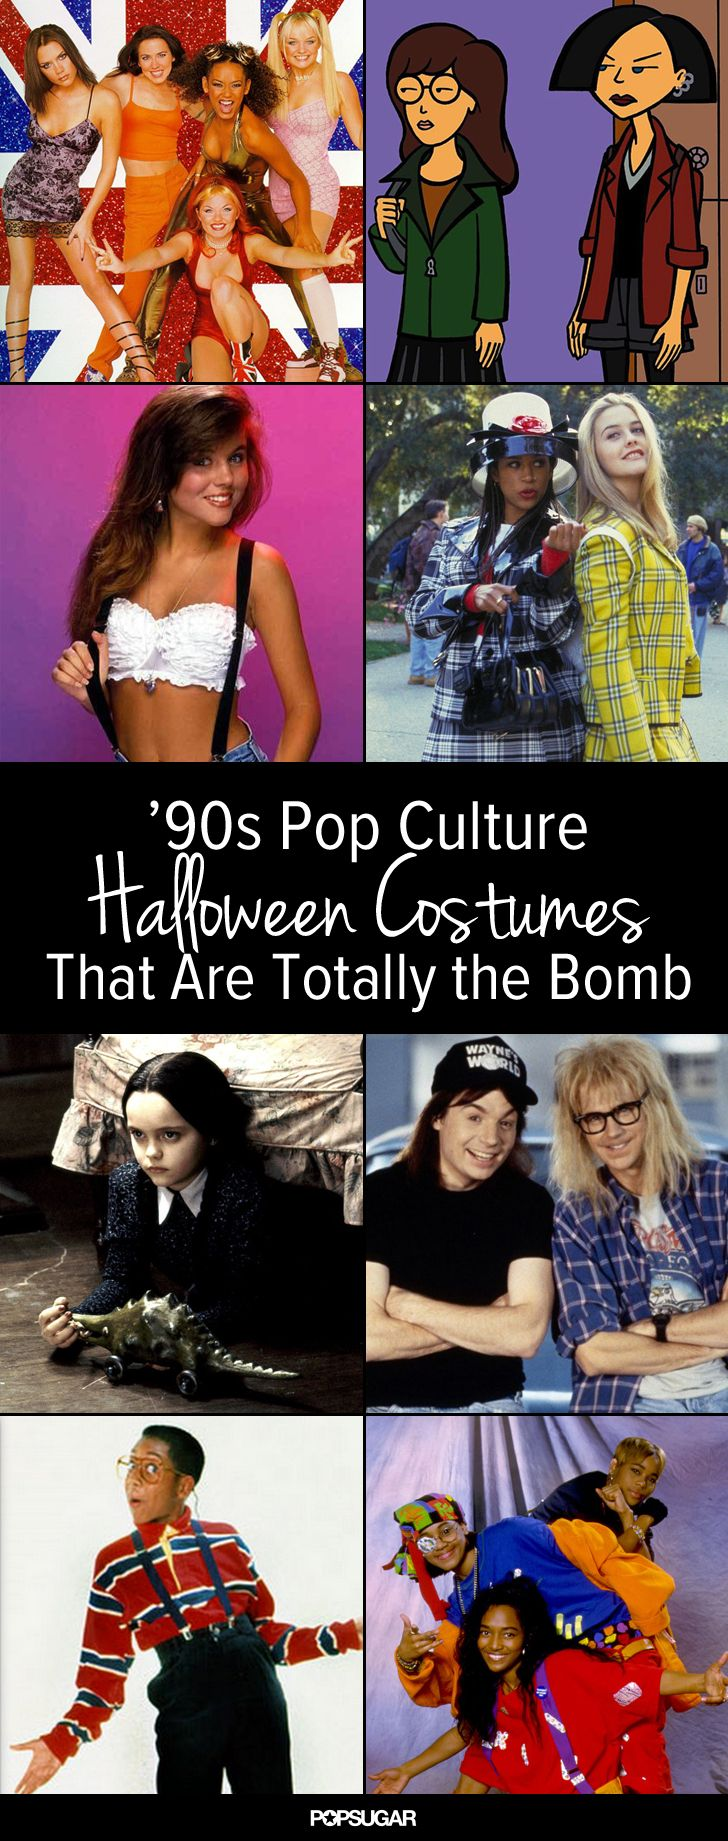 90s Pop Culture Halloween Costumes That Are All That And A Bag Of